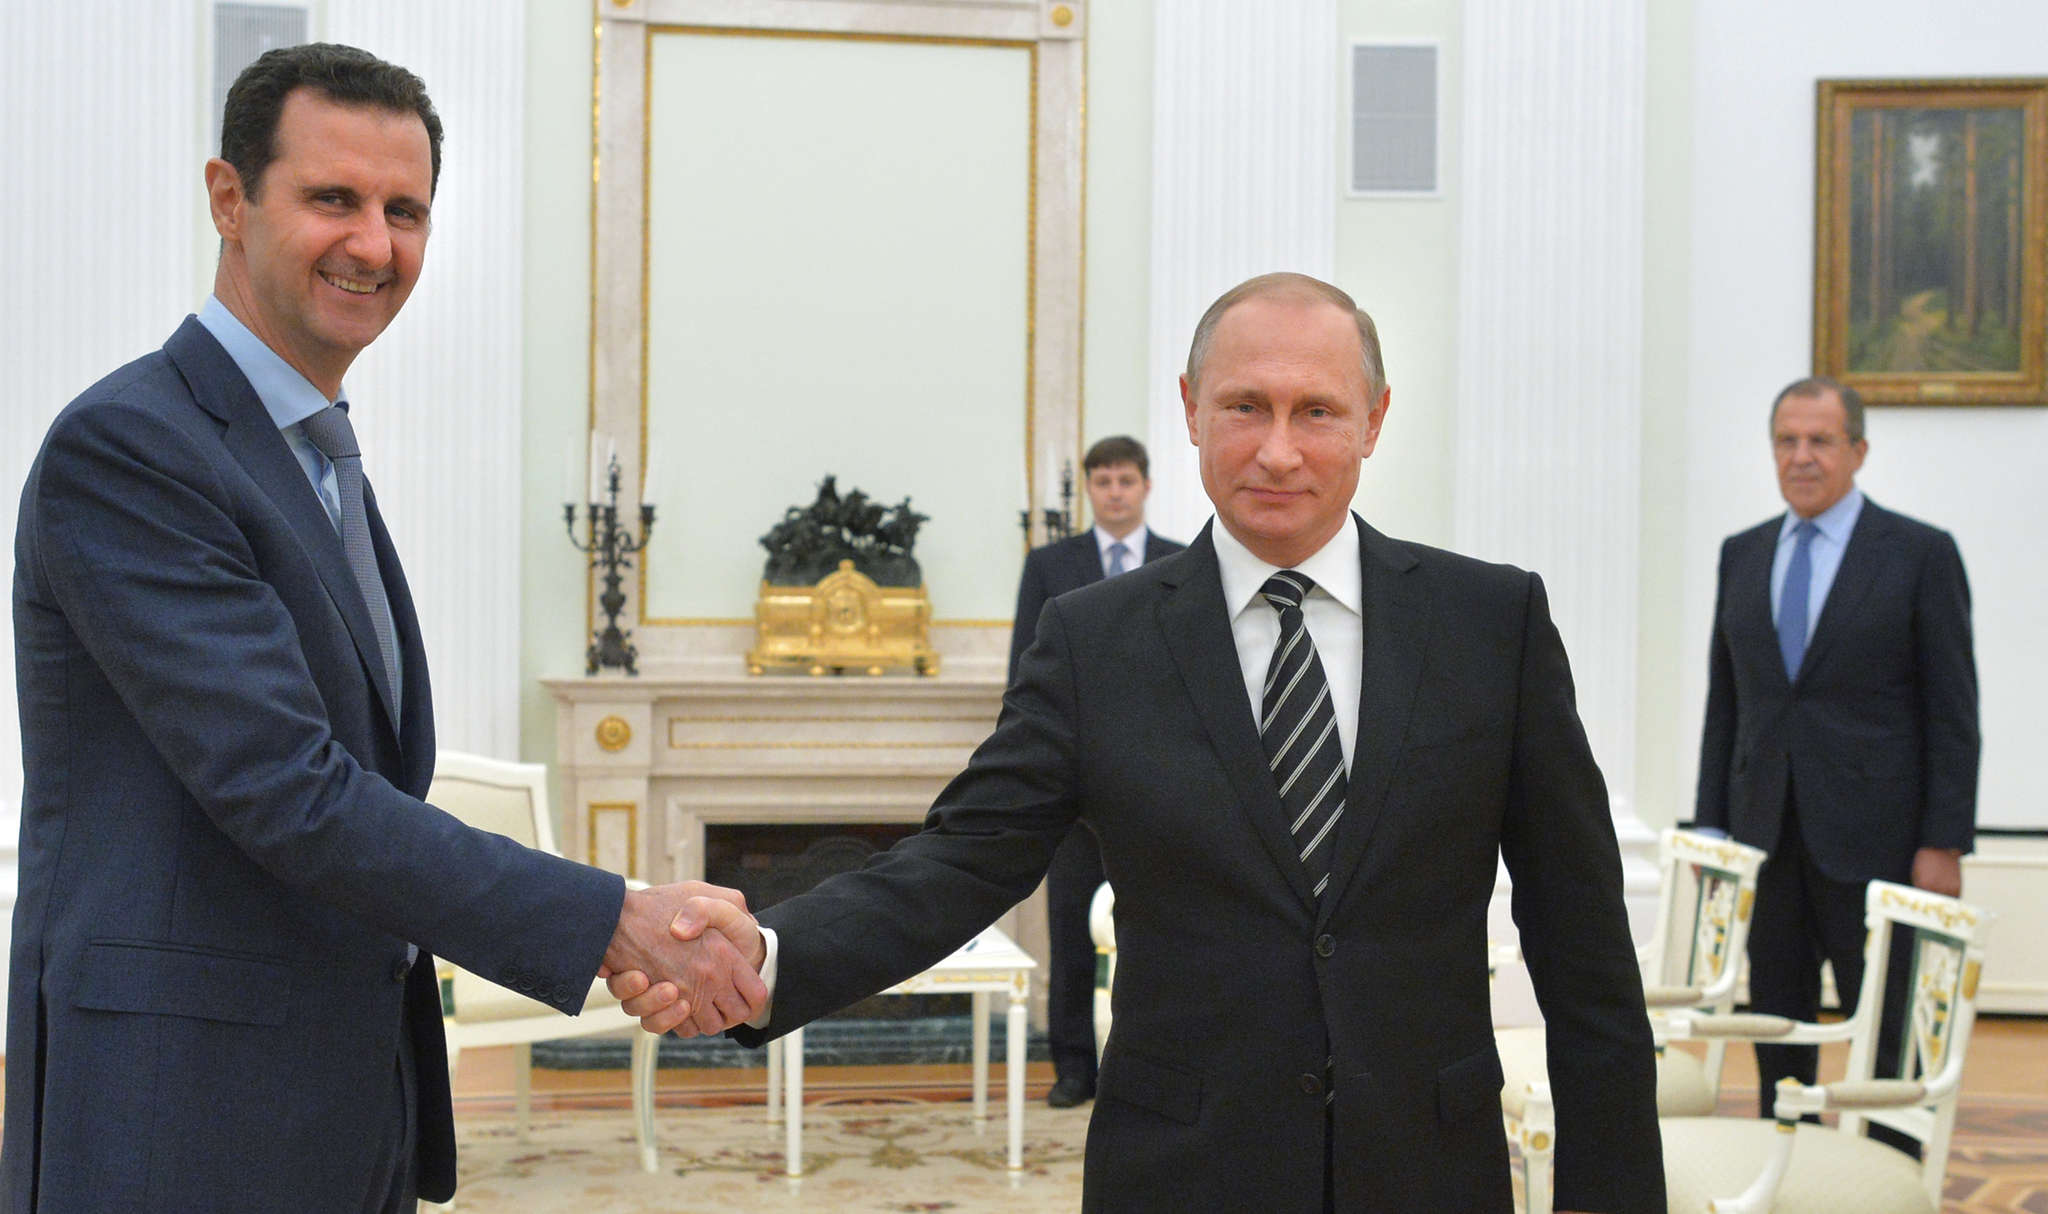 Syrian President Bashar al-Assad (left) shakes hands with Russian President Vladimir Putin, who boosted his support for Assad last year with airstrikes.